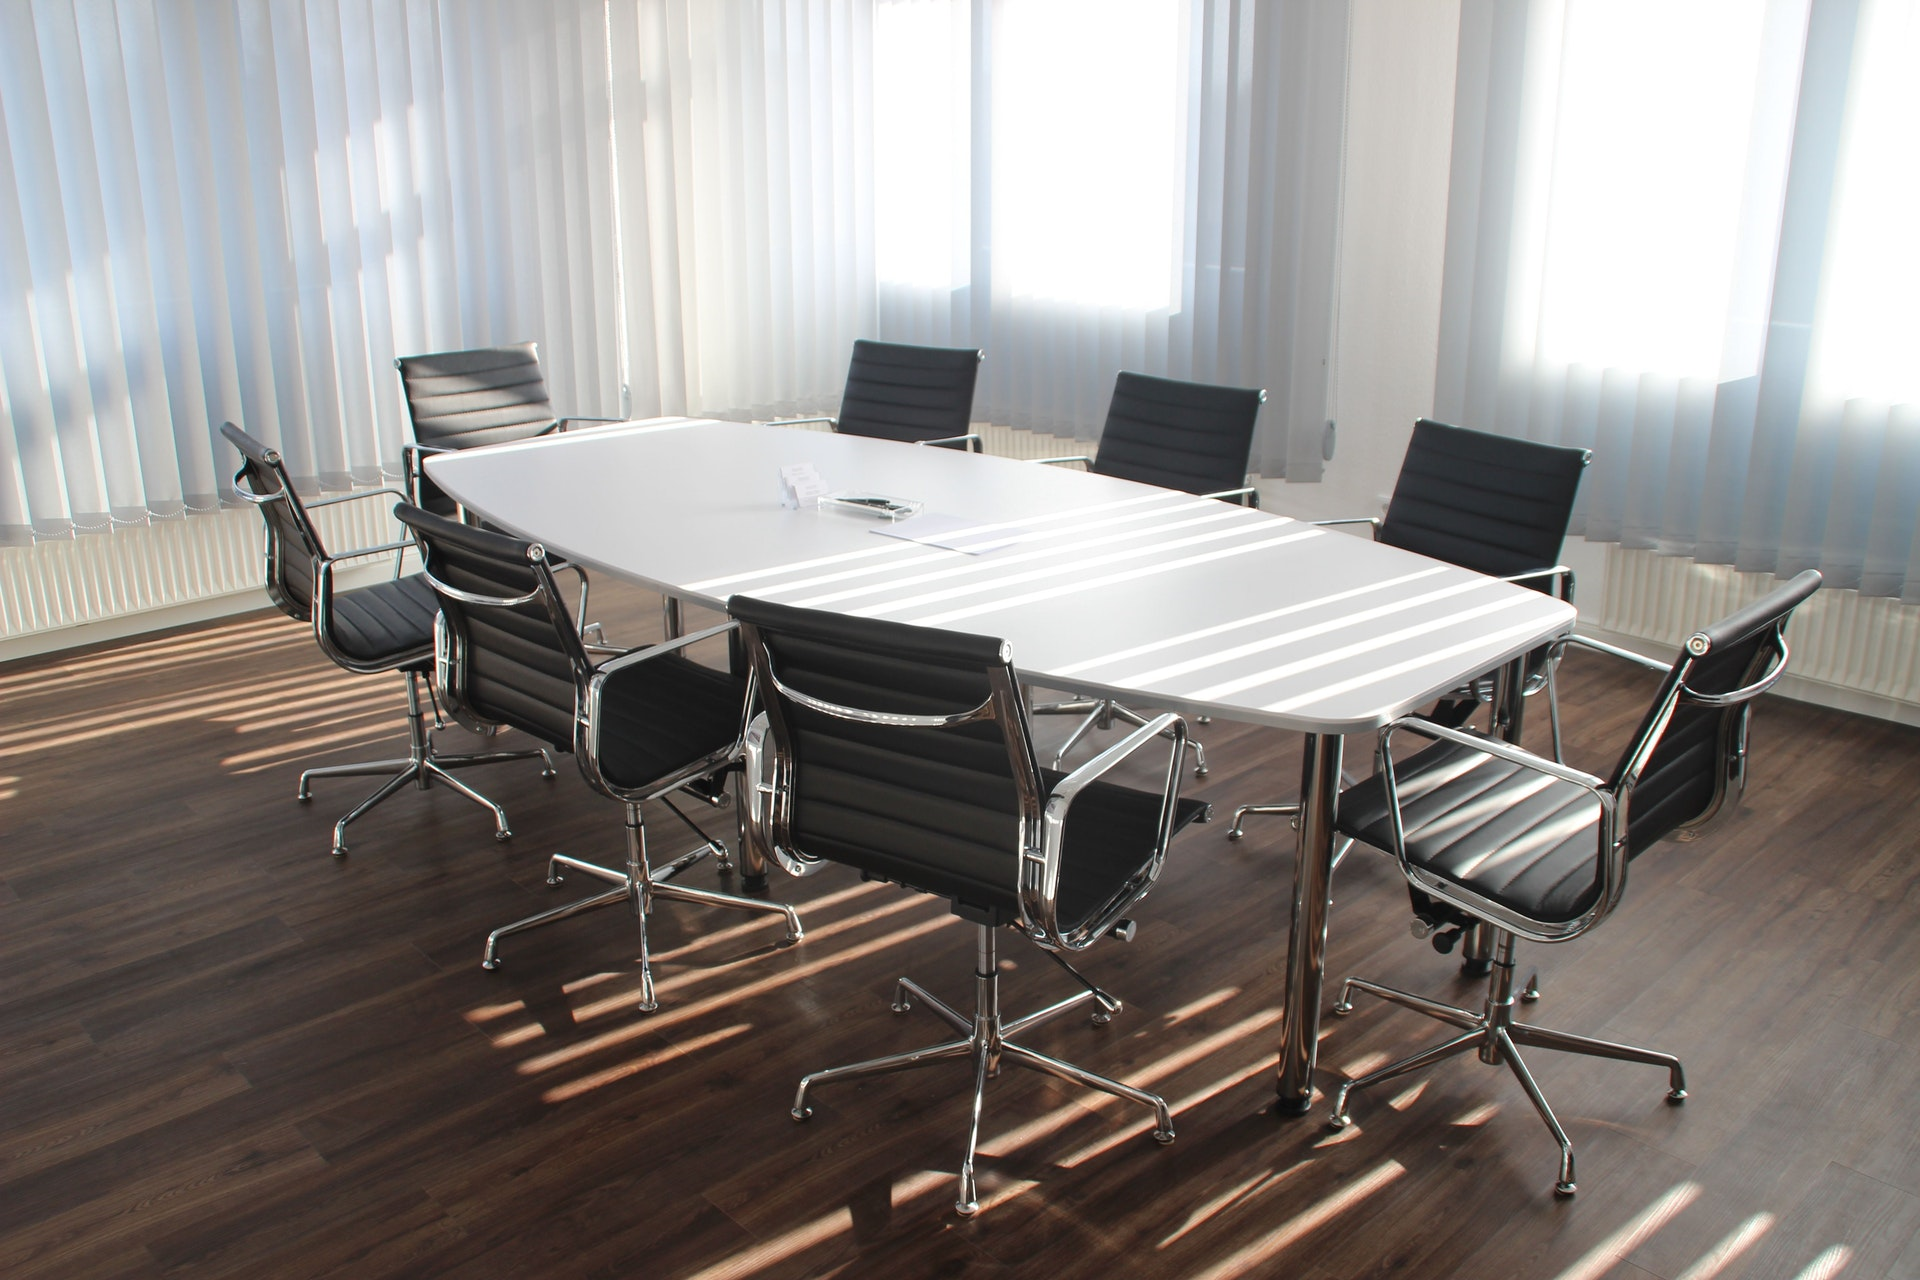 Book a meeting room for your interview